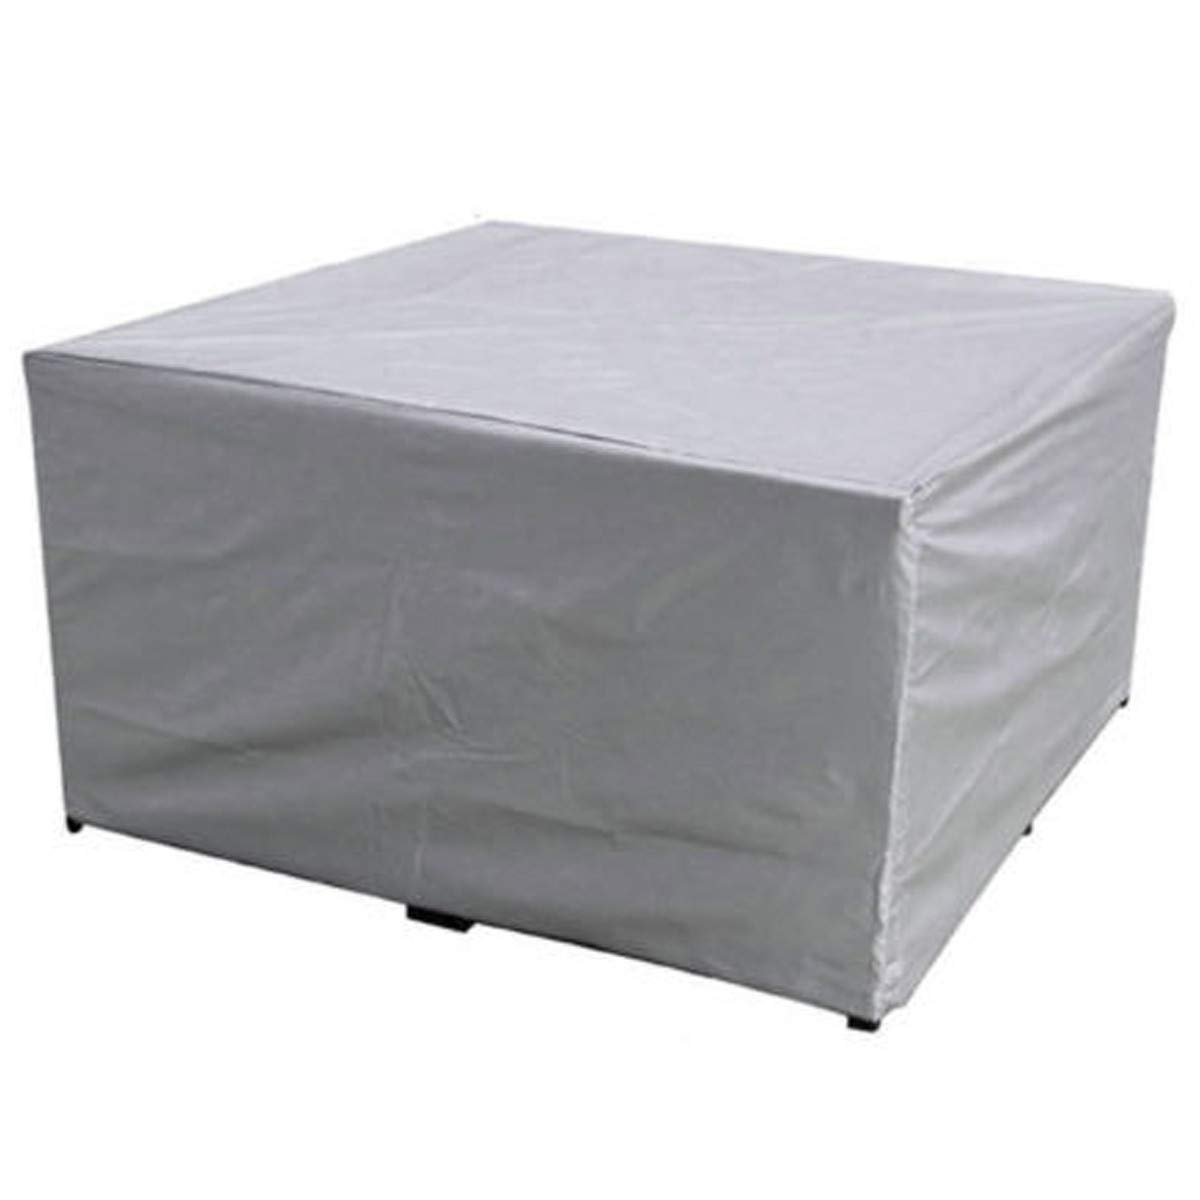 Windproof Rainproof Snowproof Dustproof 45.27 x 45.27 x 27.55 Inch Waterproof Patio Furniture Cover Heavy Duty Outdoor Table and Chair Cover Durable Rectangle Garden Lawn Desk Protect Cover